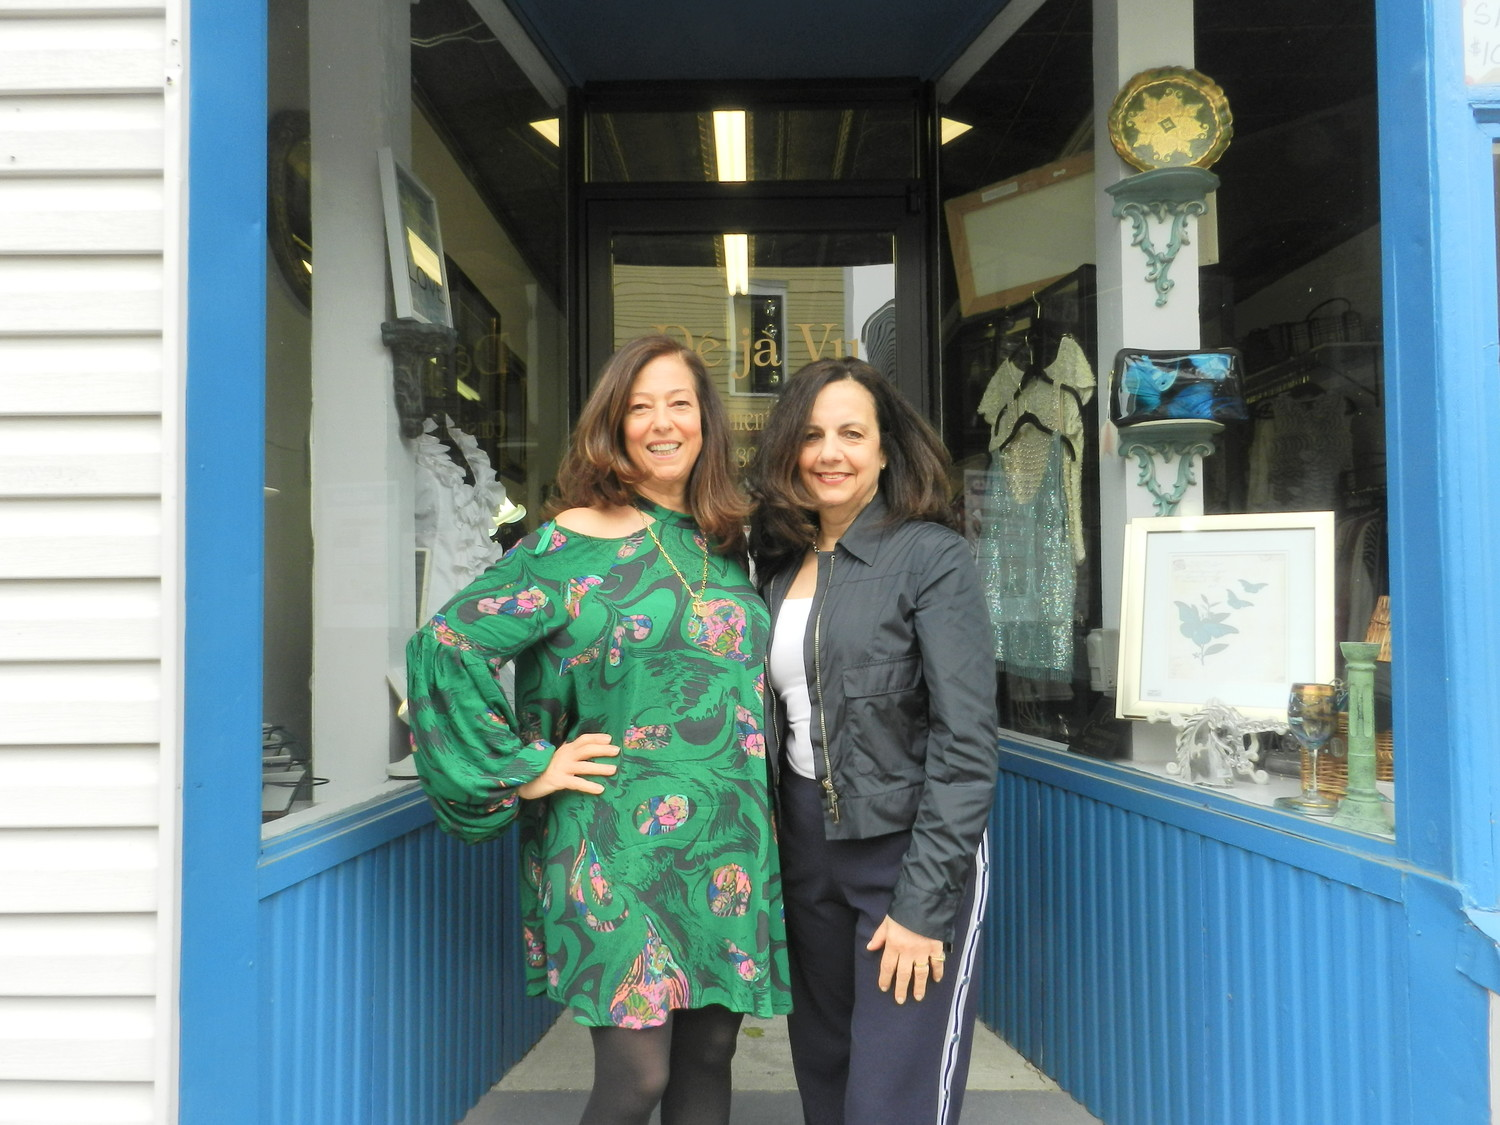 Business partners Nancy Berlangero, left, and Marion Lippiello opened Déjà Vu last year. They have been friends for more than 30 years.